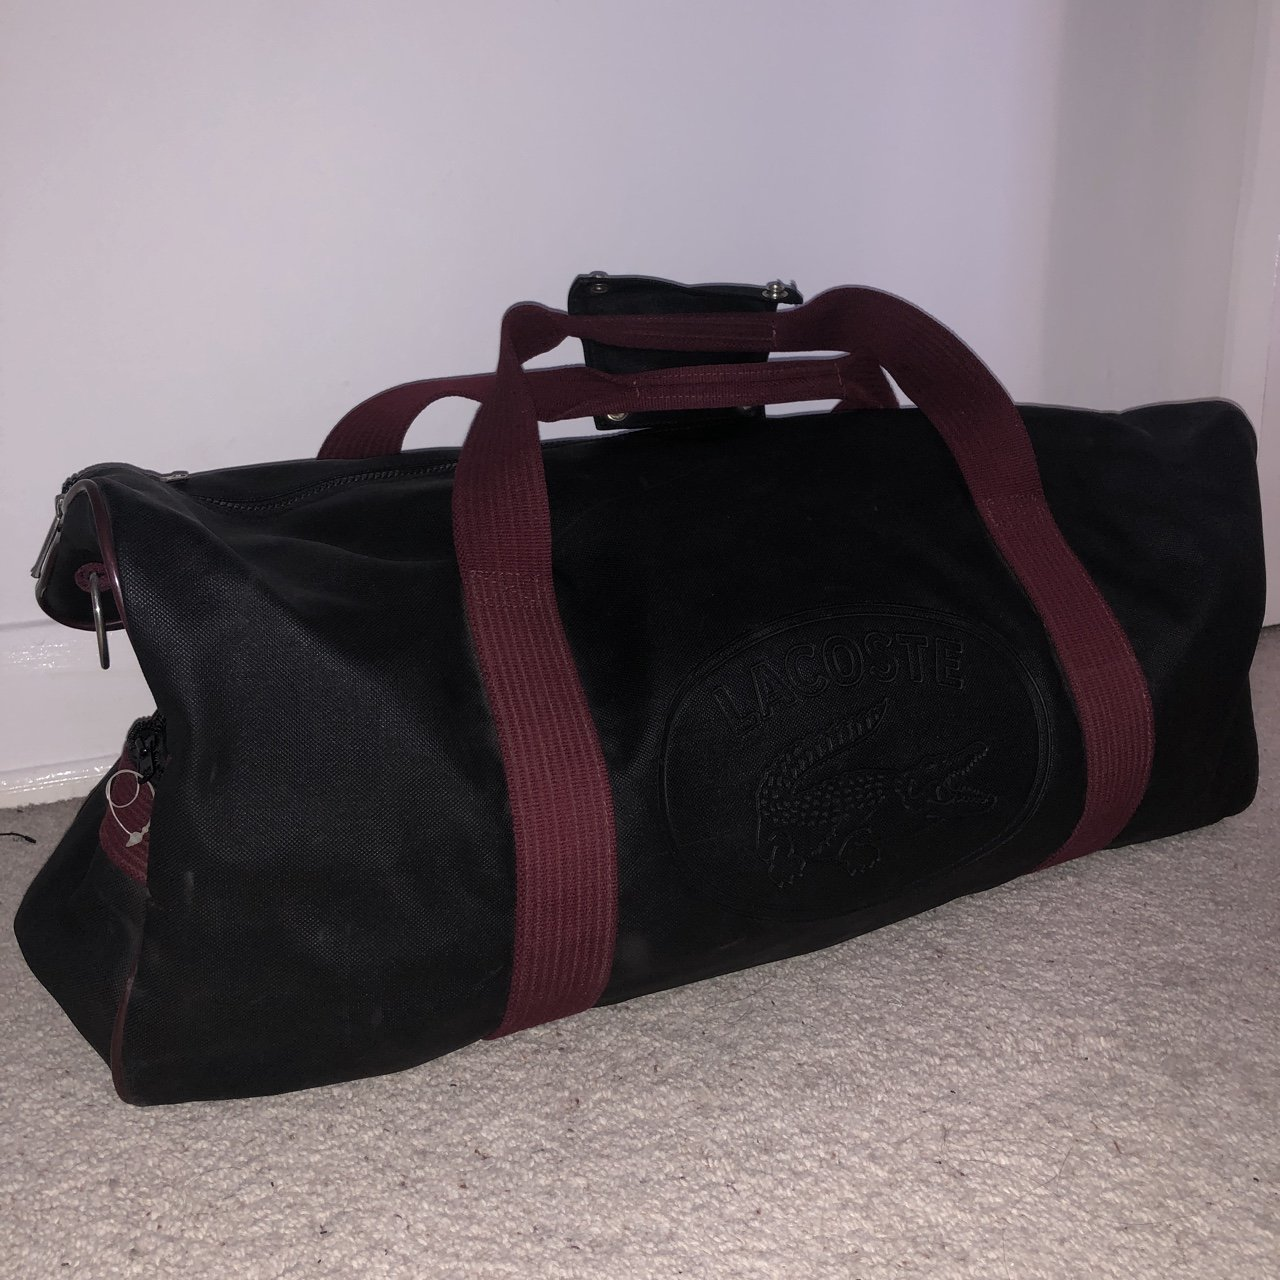 719b587eaa3 @chrispowell31. 5 months ago. Grimsby, United Kingdom. Vintage Lacoste  leather gym Keeptall hold-all bag